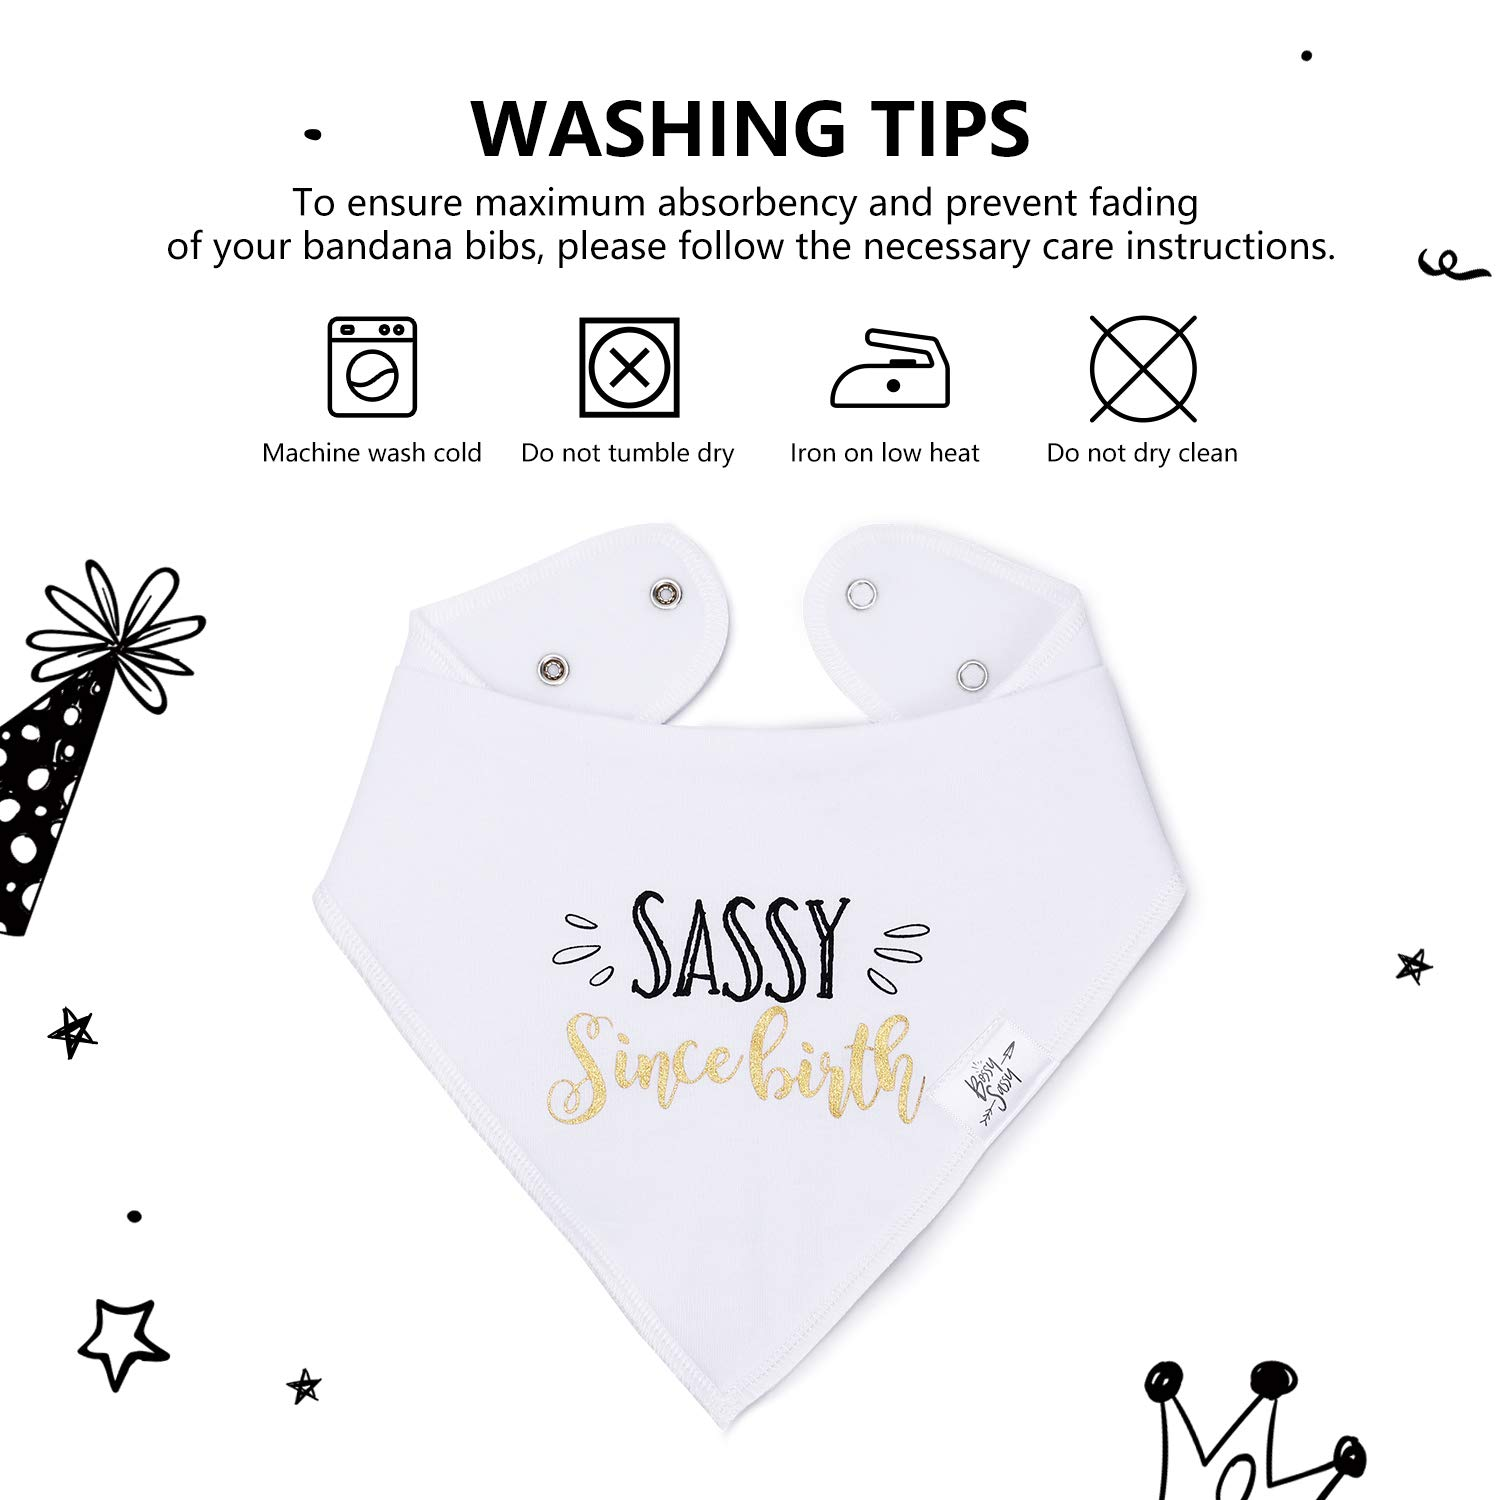 Baby Bandana Drool Bibs 4 Pack for Newborn - Black & White Baby Bibs with Inspiring Quote for Boys Girls Unisex - Best Baby Shower/Registry Gift by Bossy Sassy